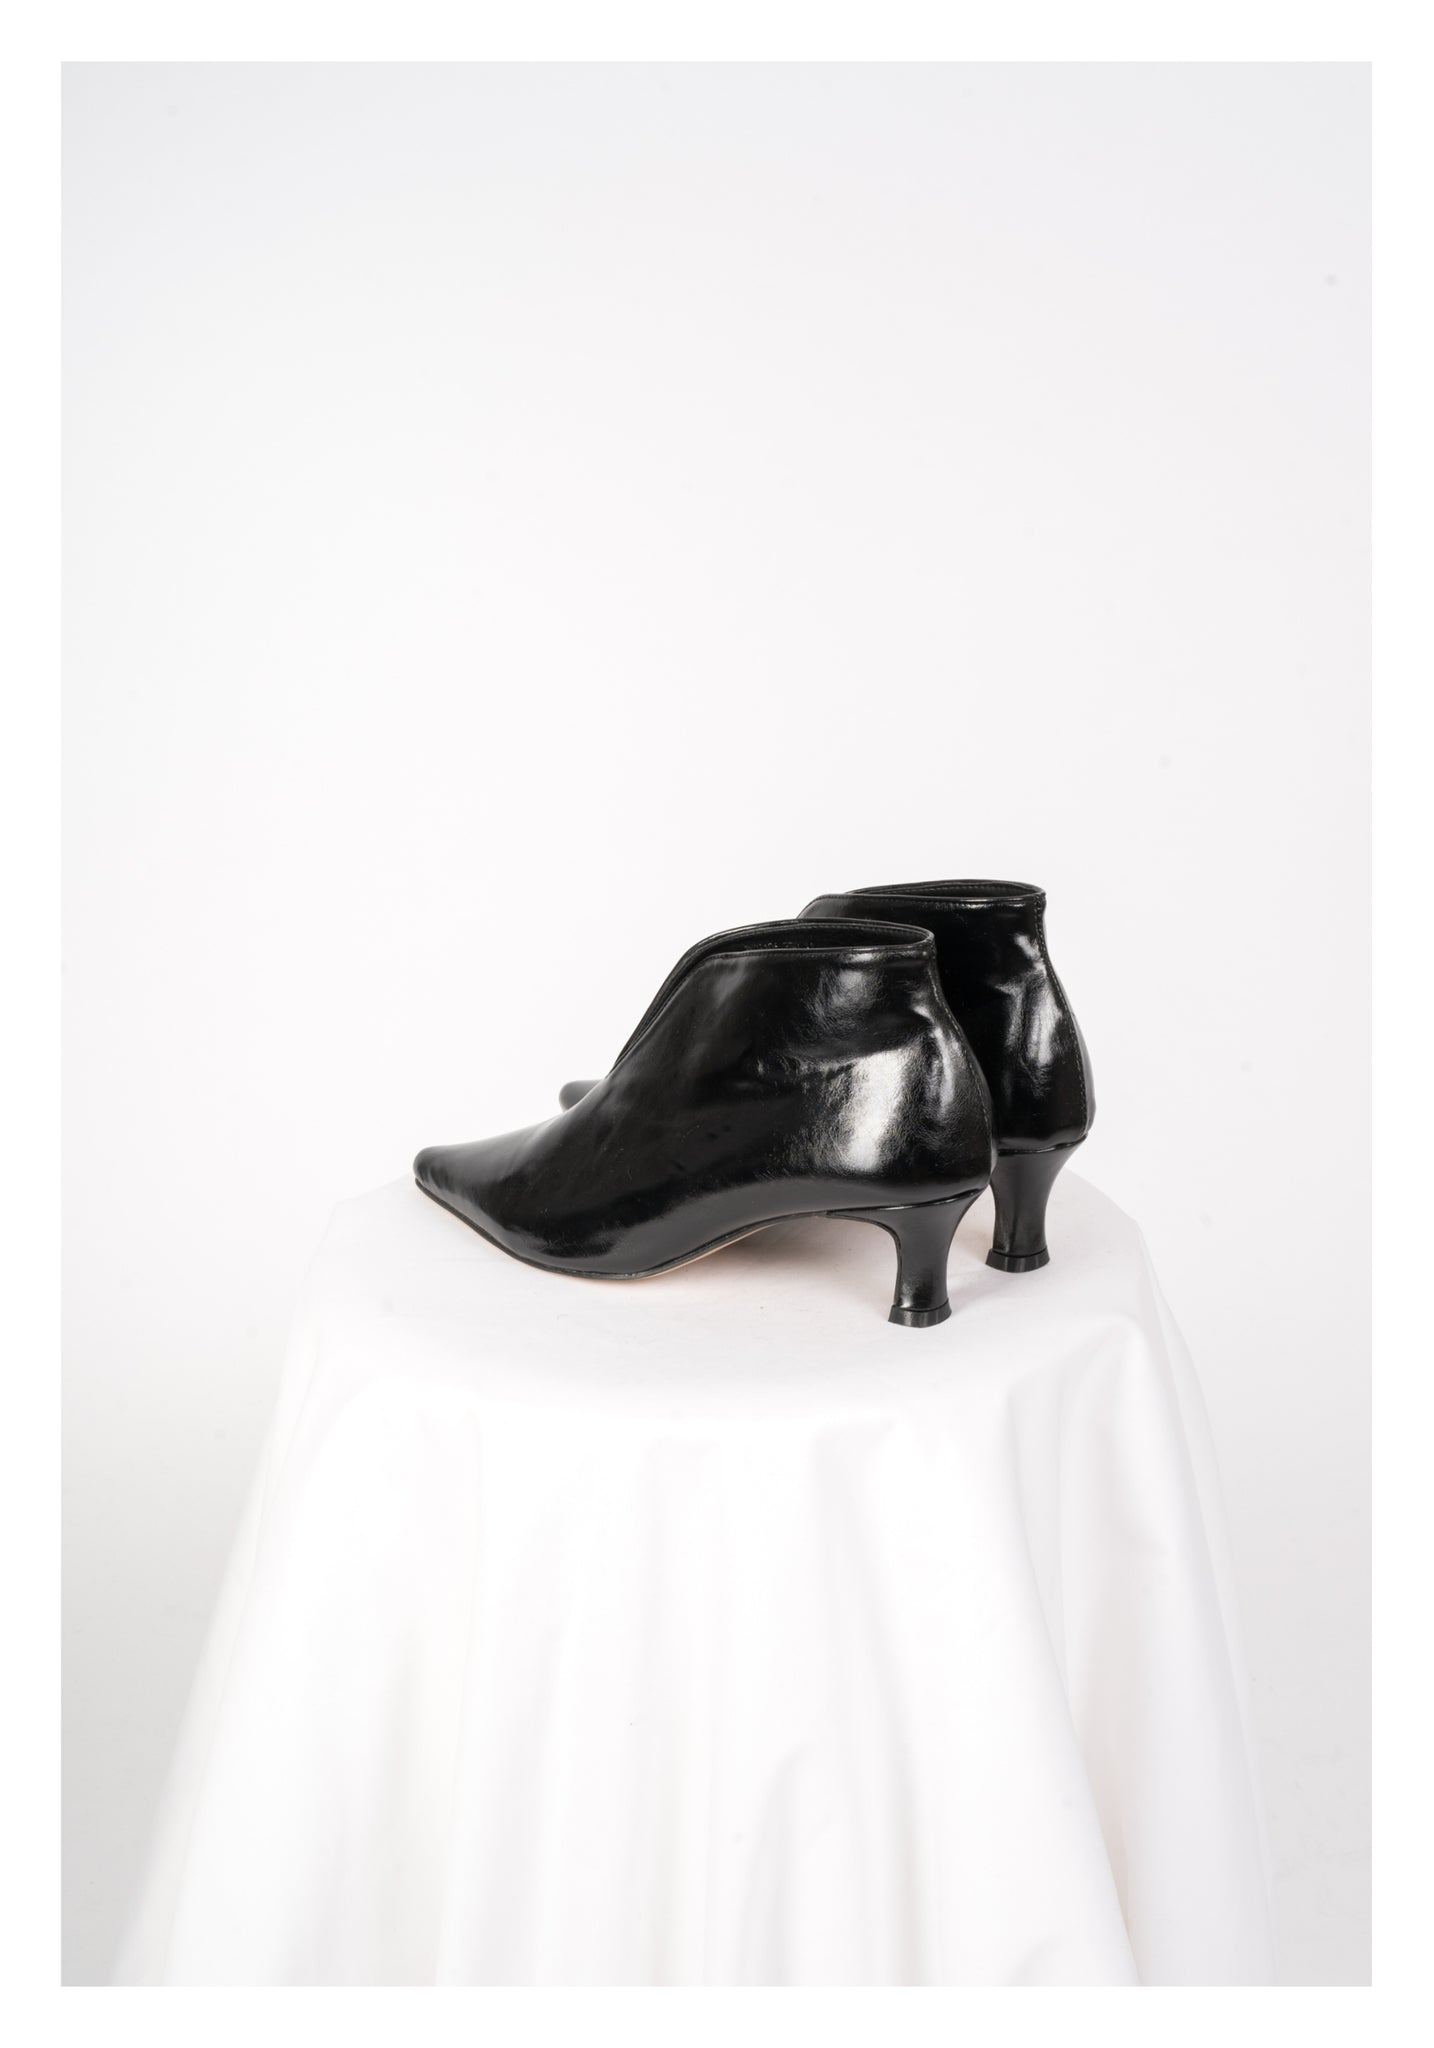 Beth Slit Ankle Boots - whoami